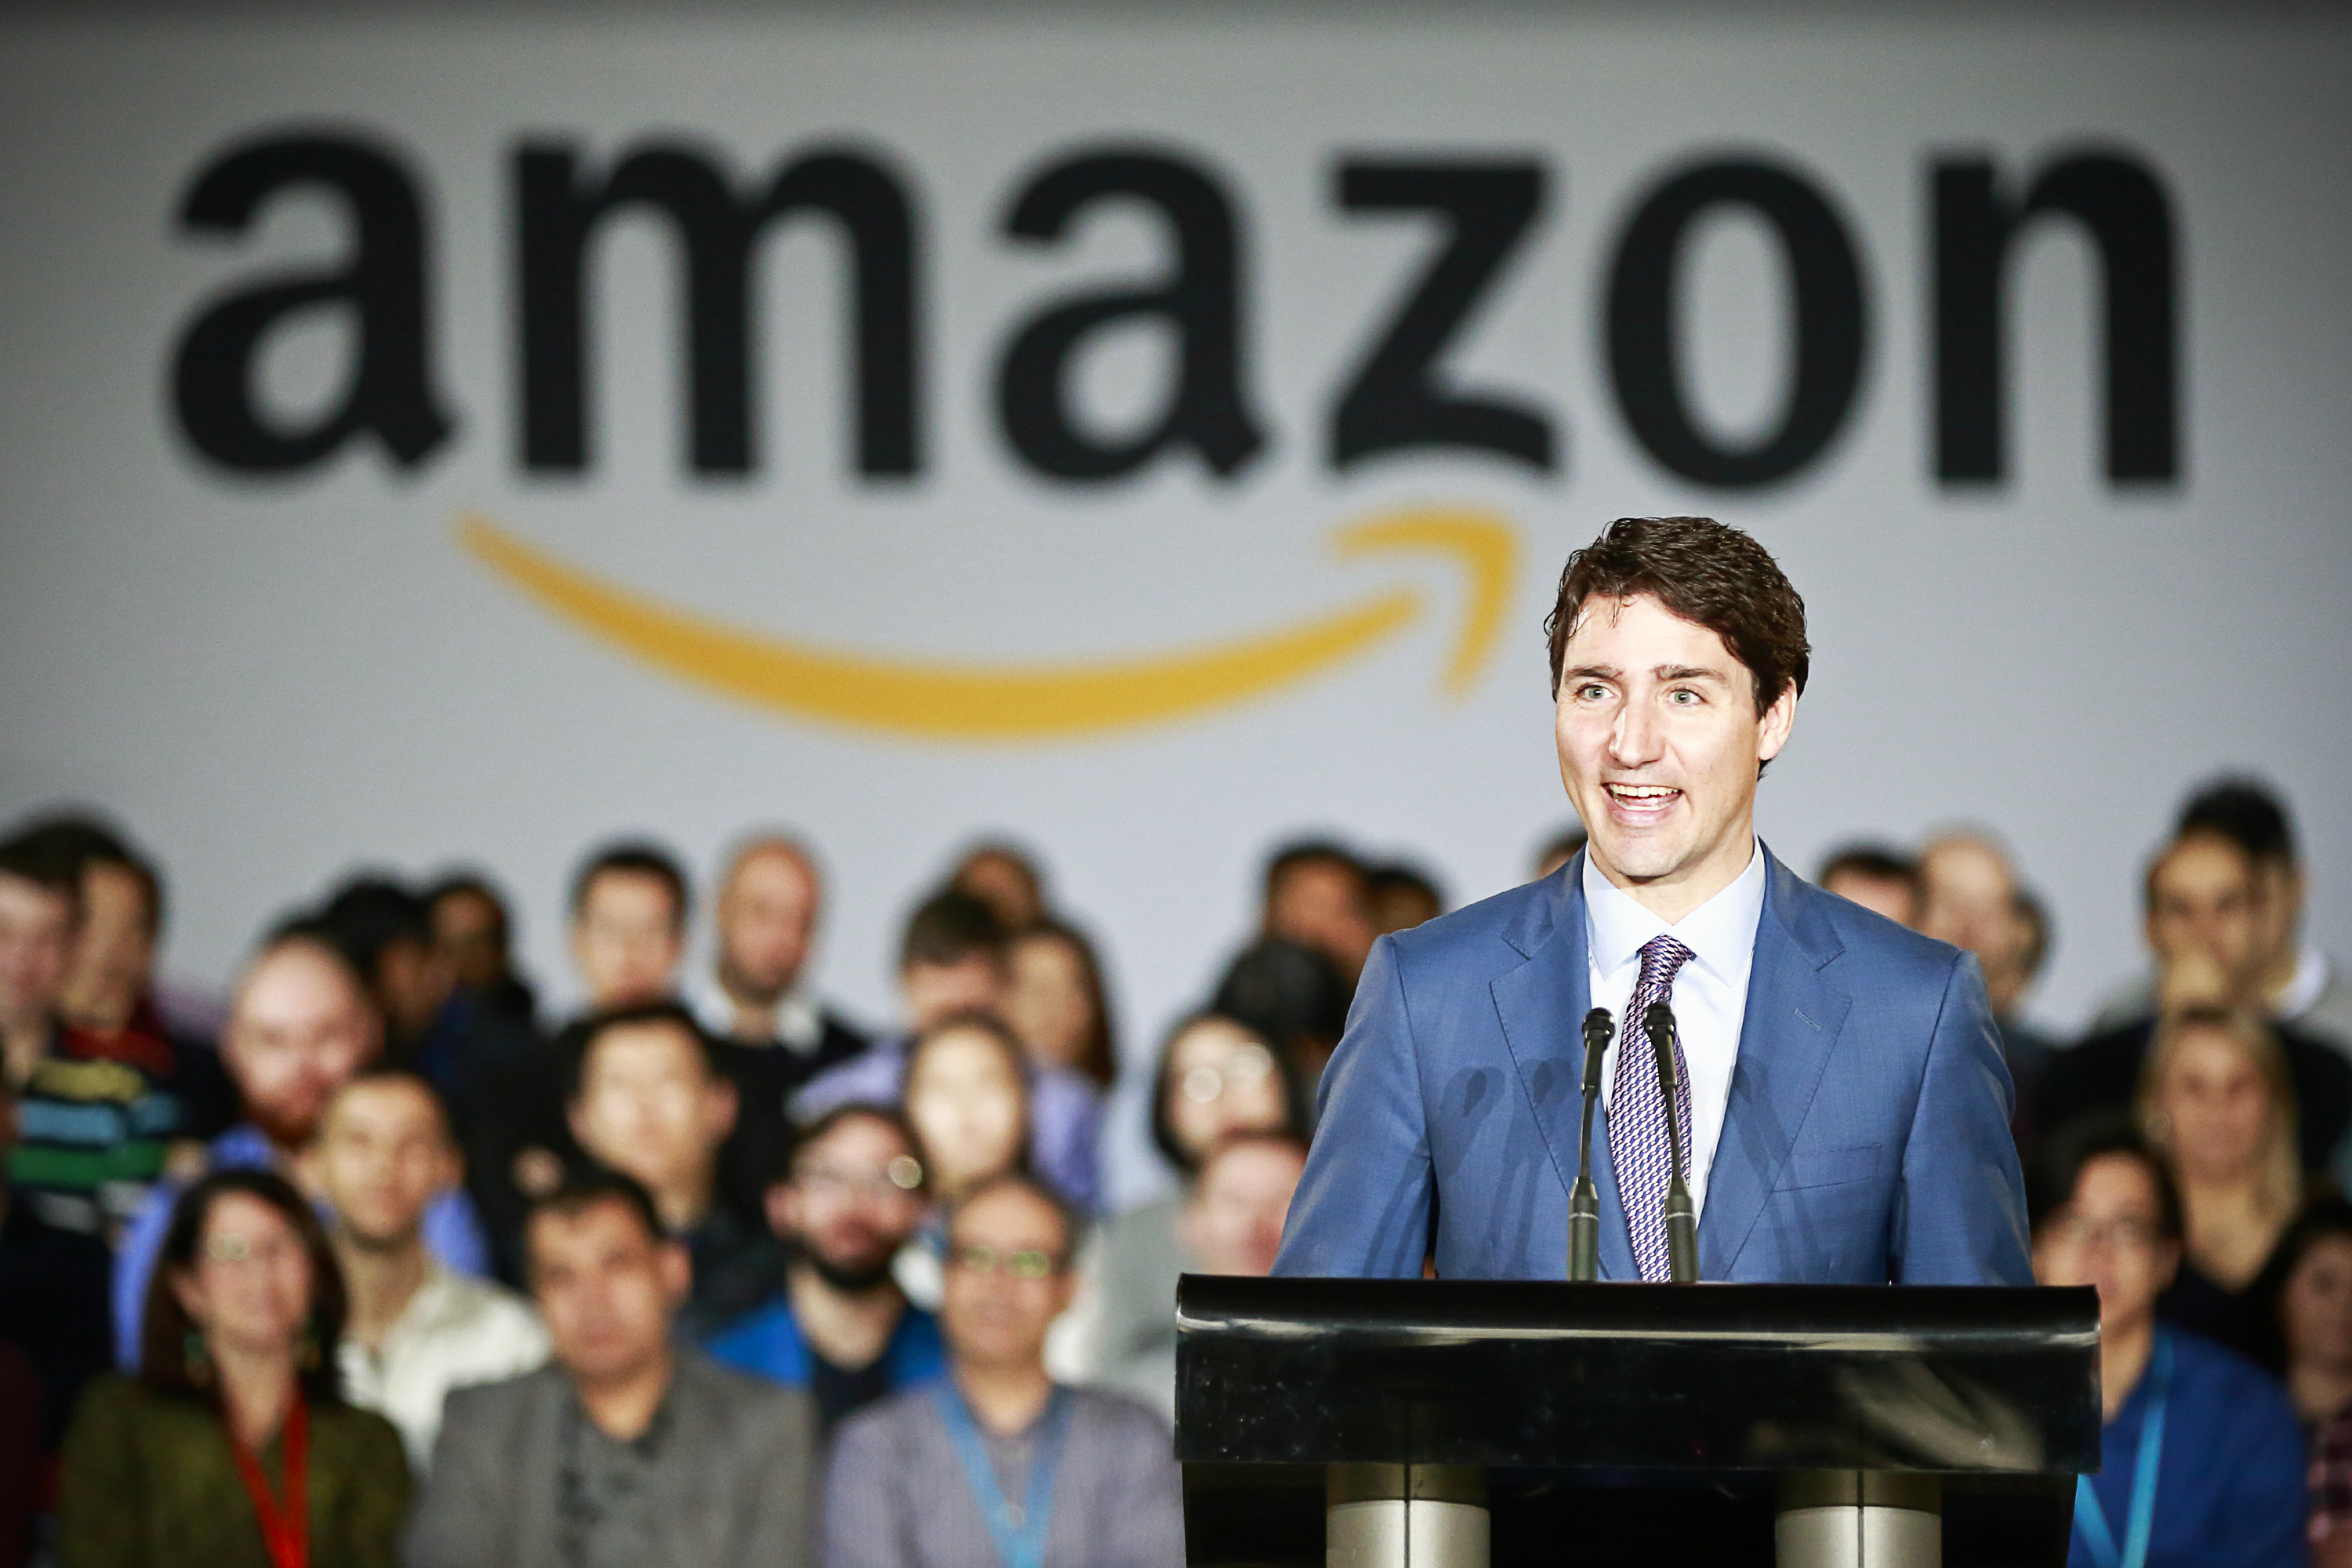 Canada's becoming a tech hub thanks to Donald Trump immigration